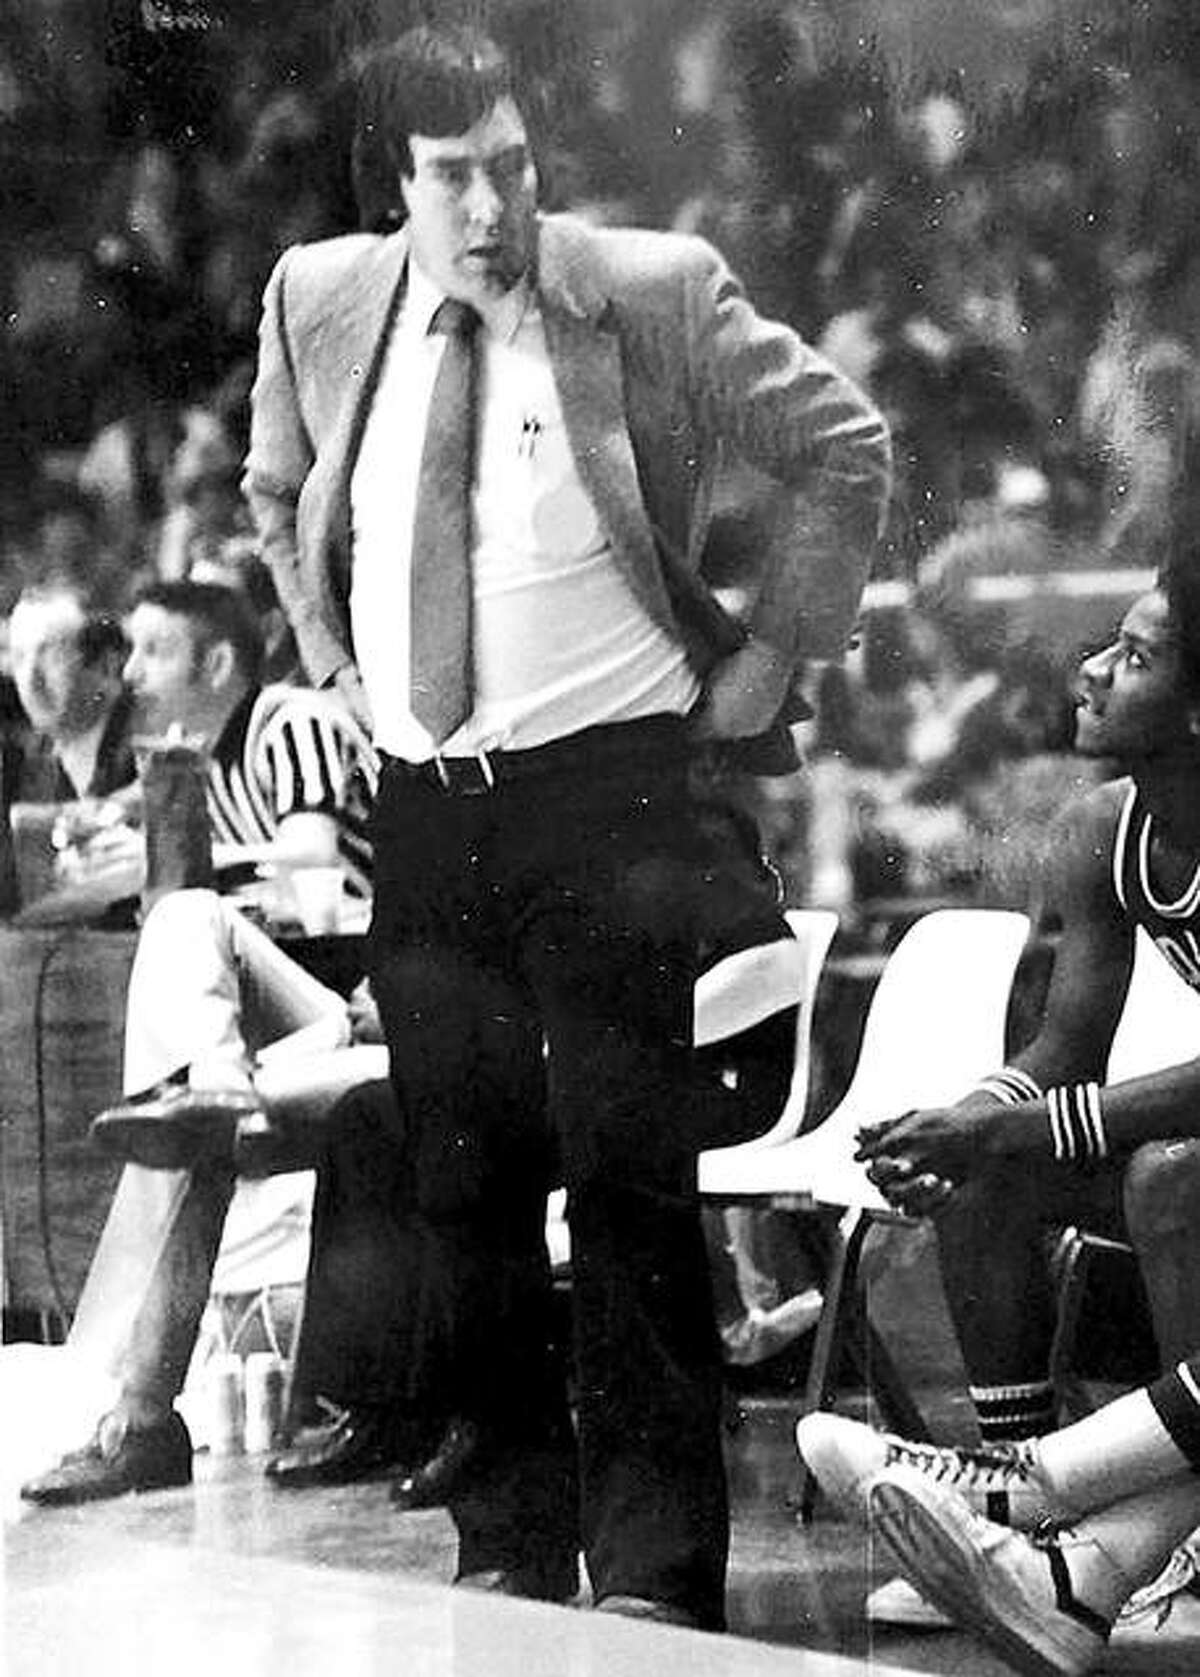 Larry Graham looks down at his bench during the 1981 IHSA Class A State Tournament at Assembly Hall in Champaign.